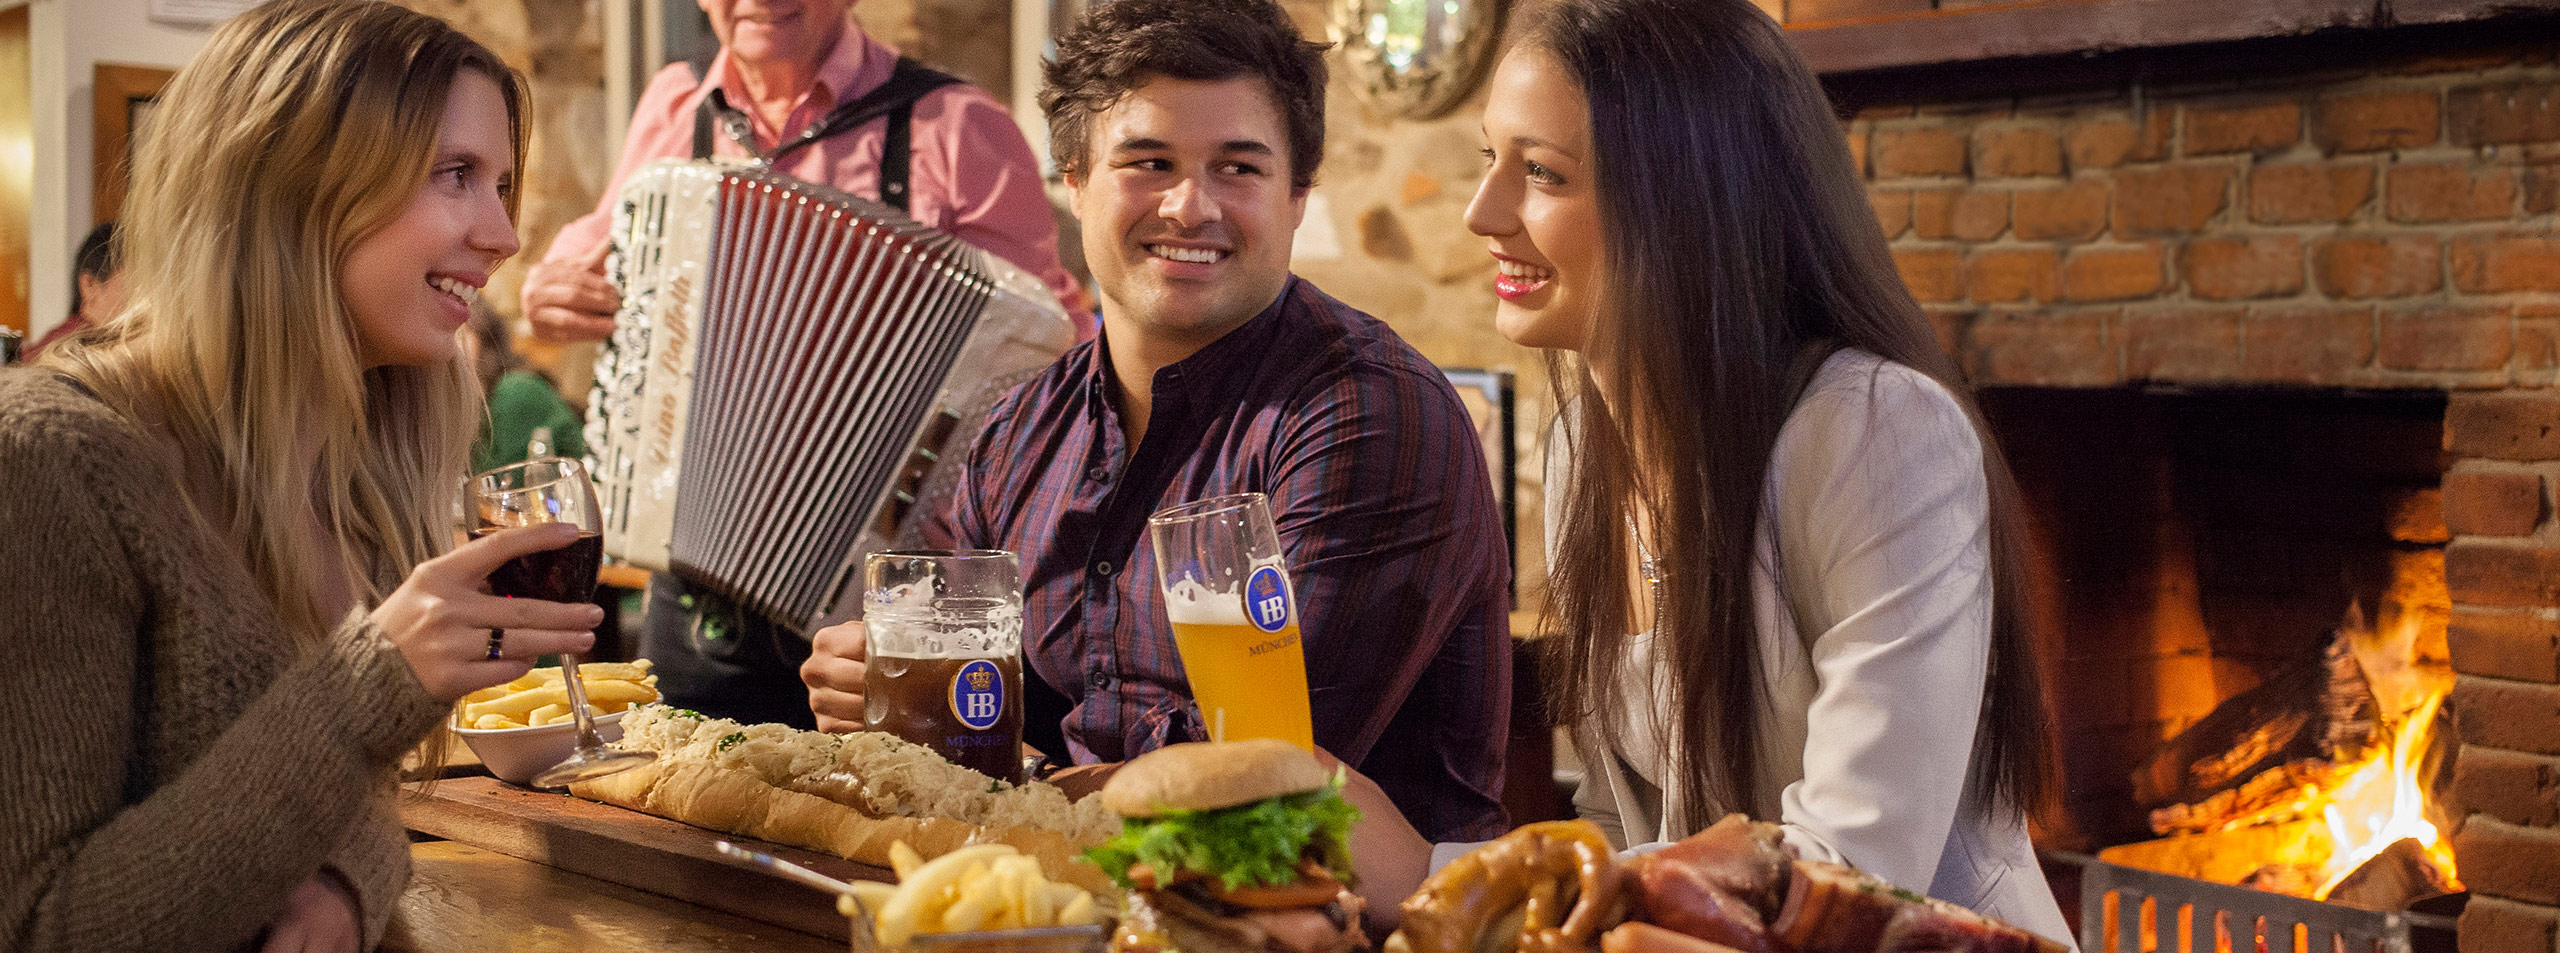 Sample German Beers in Hahndorf